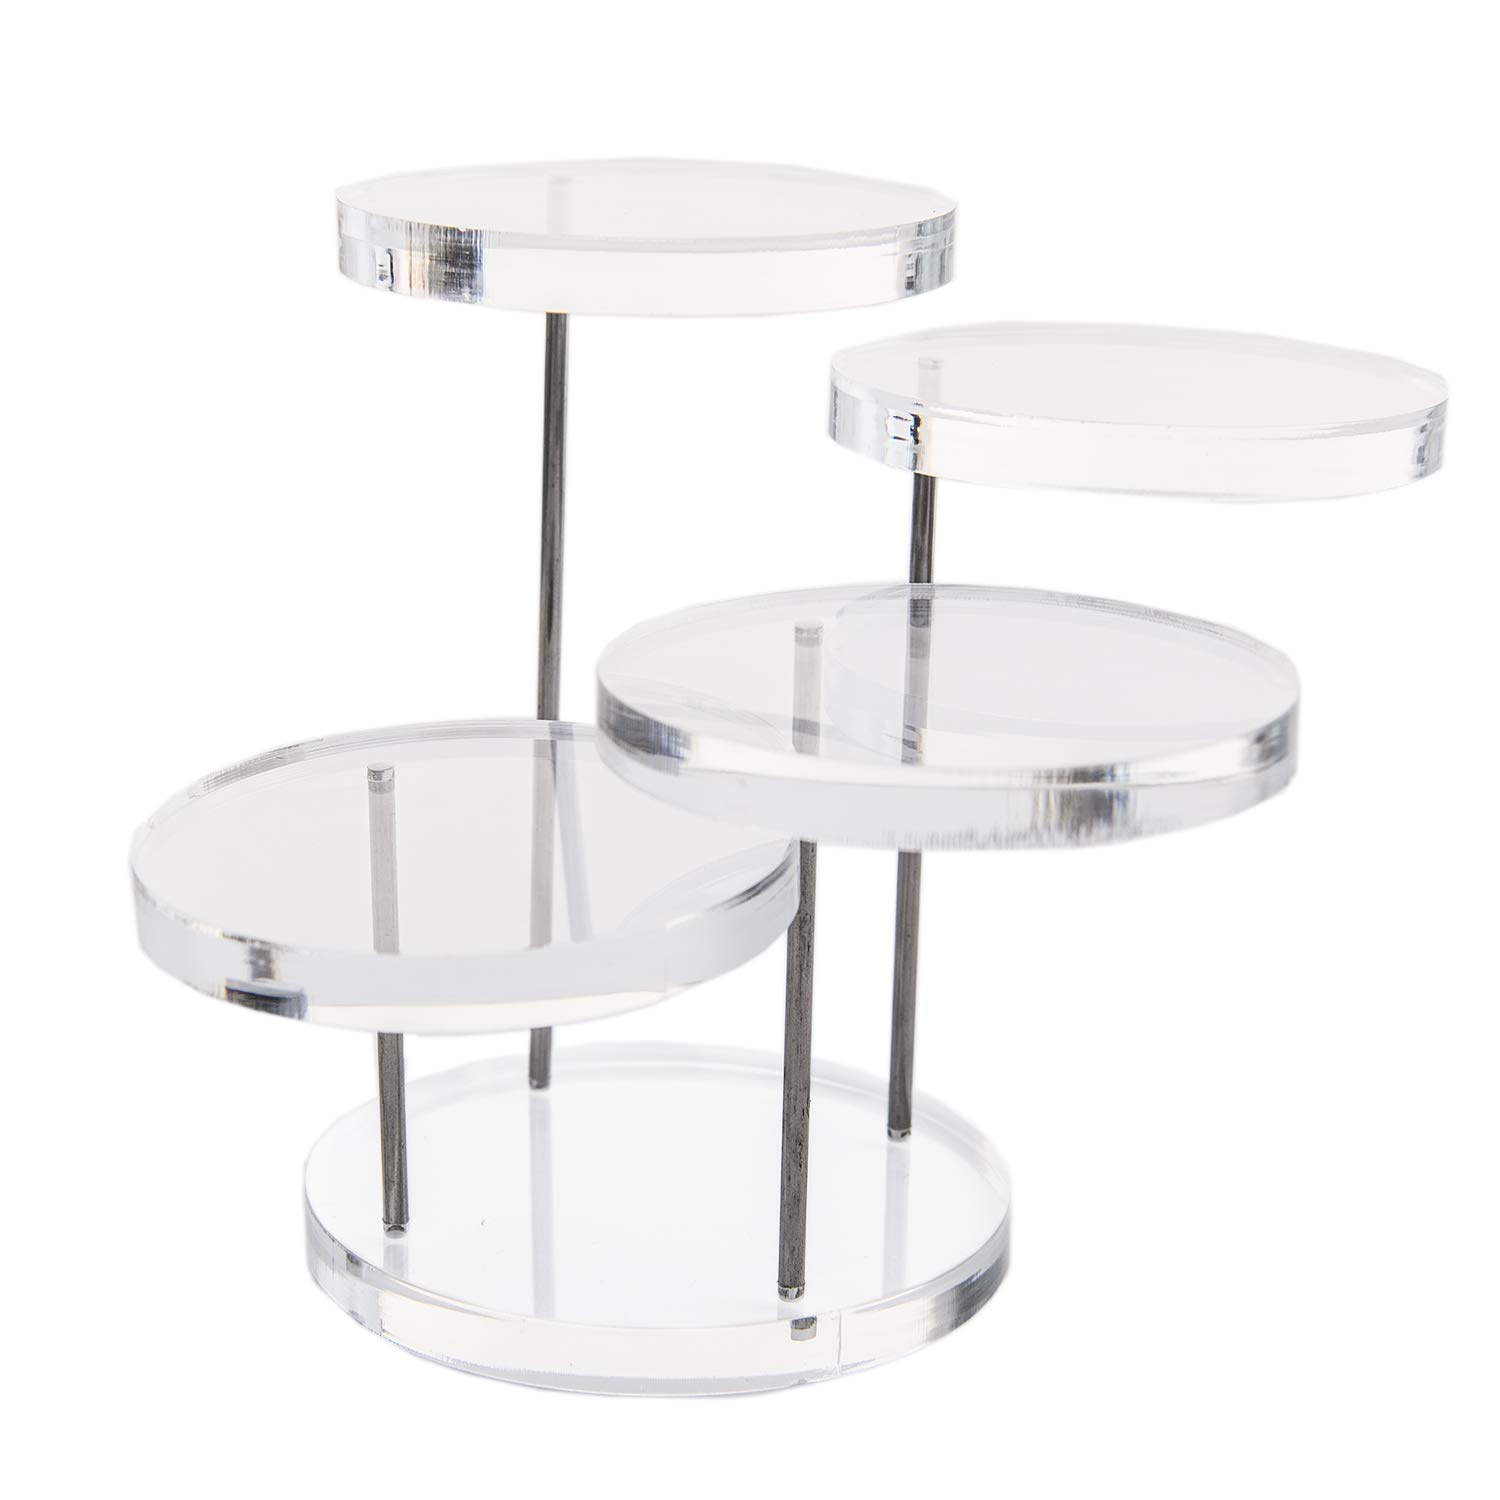 Funnuf 4 Tier Acrylic Rotatable Jewelry Display Stands Rings Earrings, Clear Acrylic